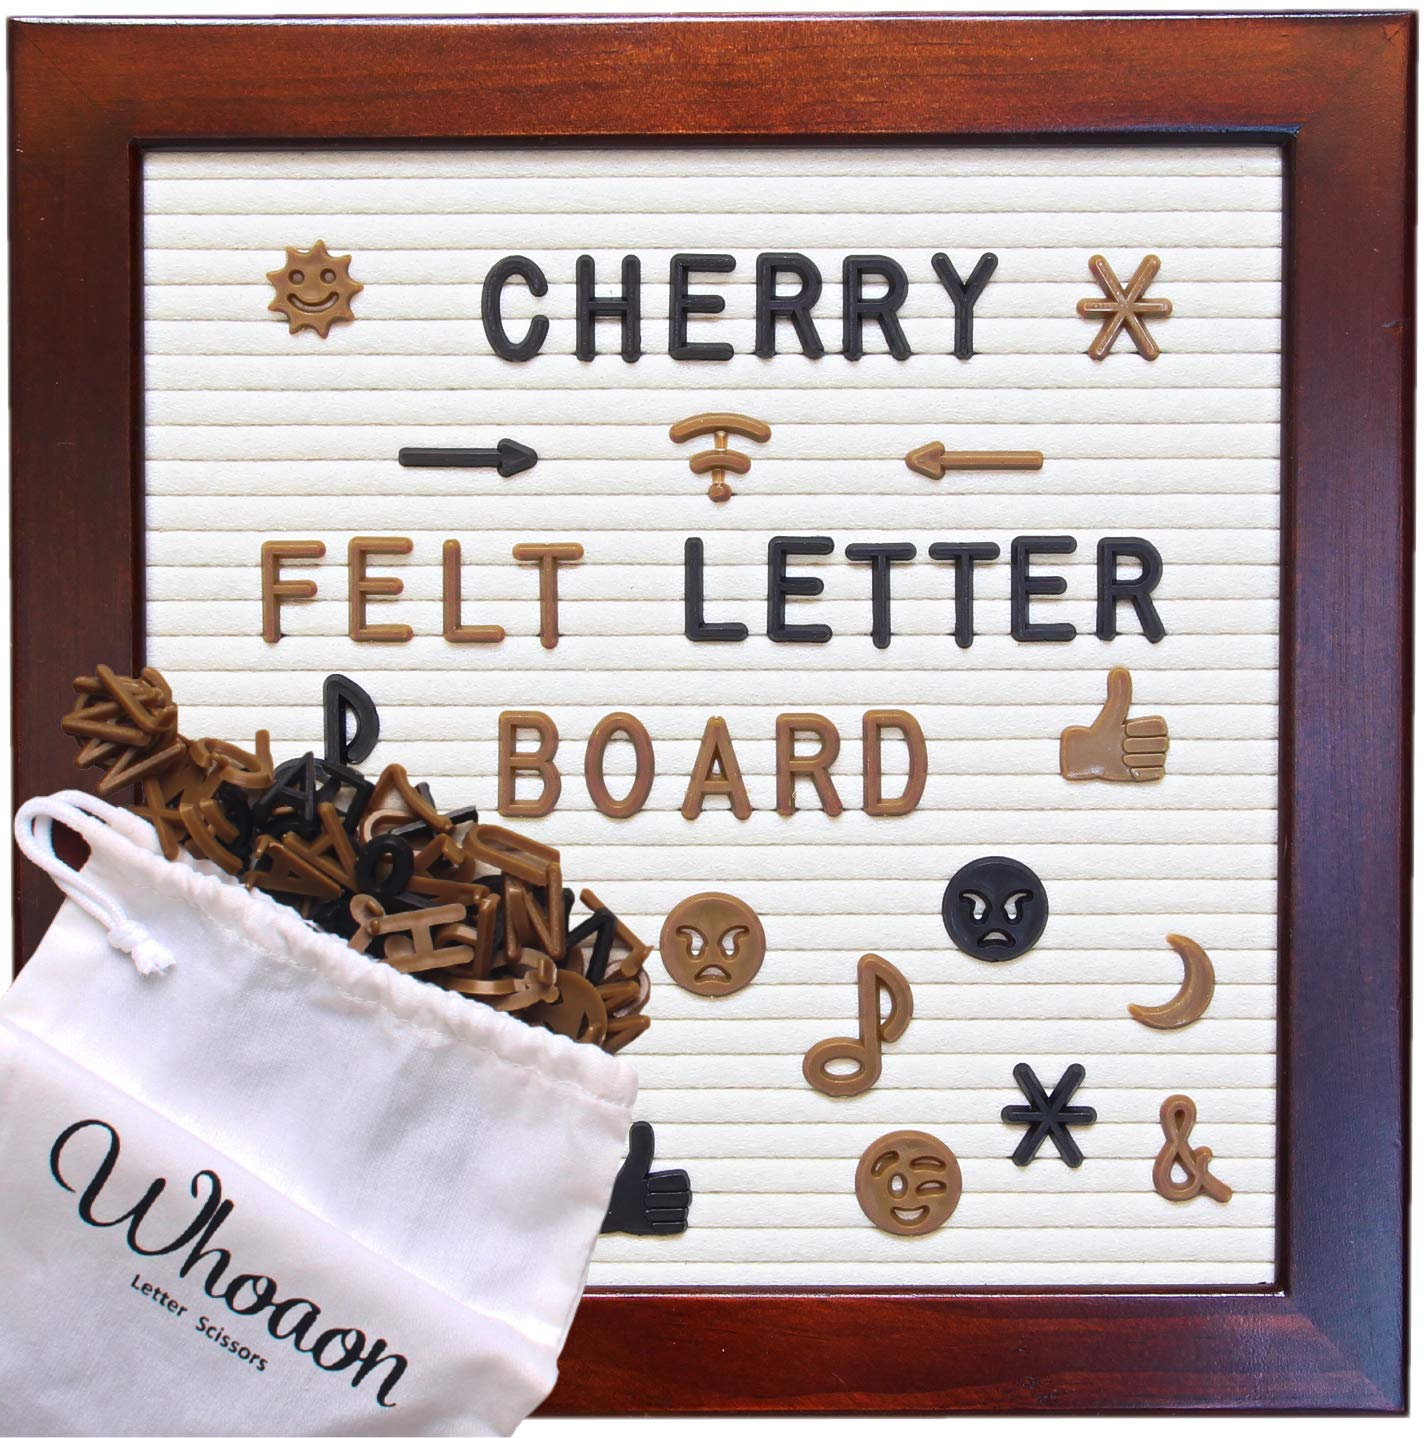 Classic Cherry Red Frame Cream Felt Letter Board 10 x 10 inches. 346 Brown & 173 Black Plastic Letters. Vintage-Processed Pine Wood Frame. by whoaon